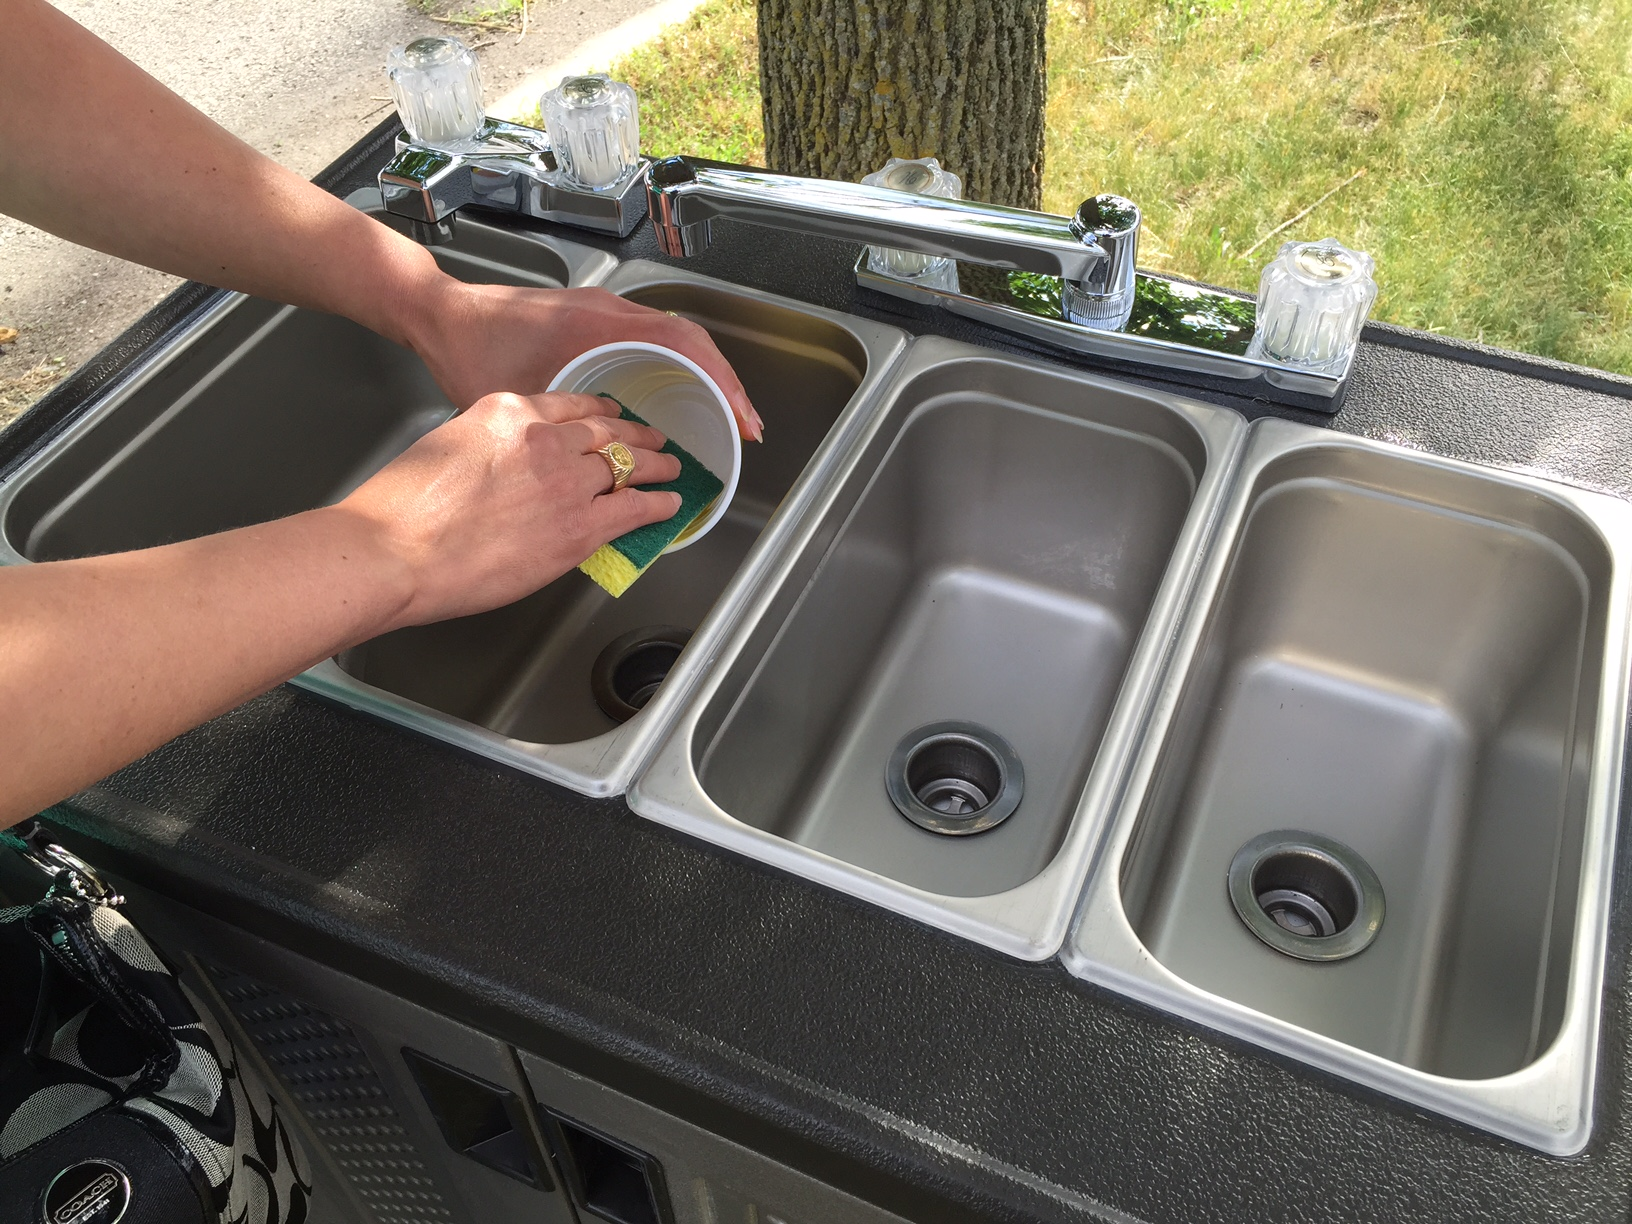 portable sinks for food trucks and outdoor food vendors